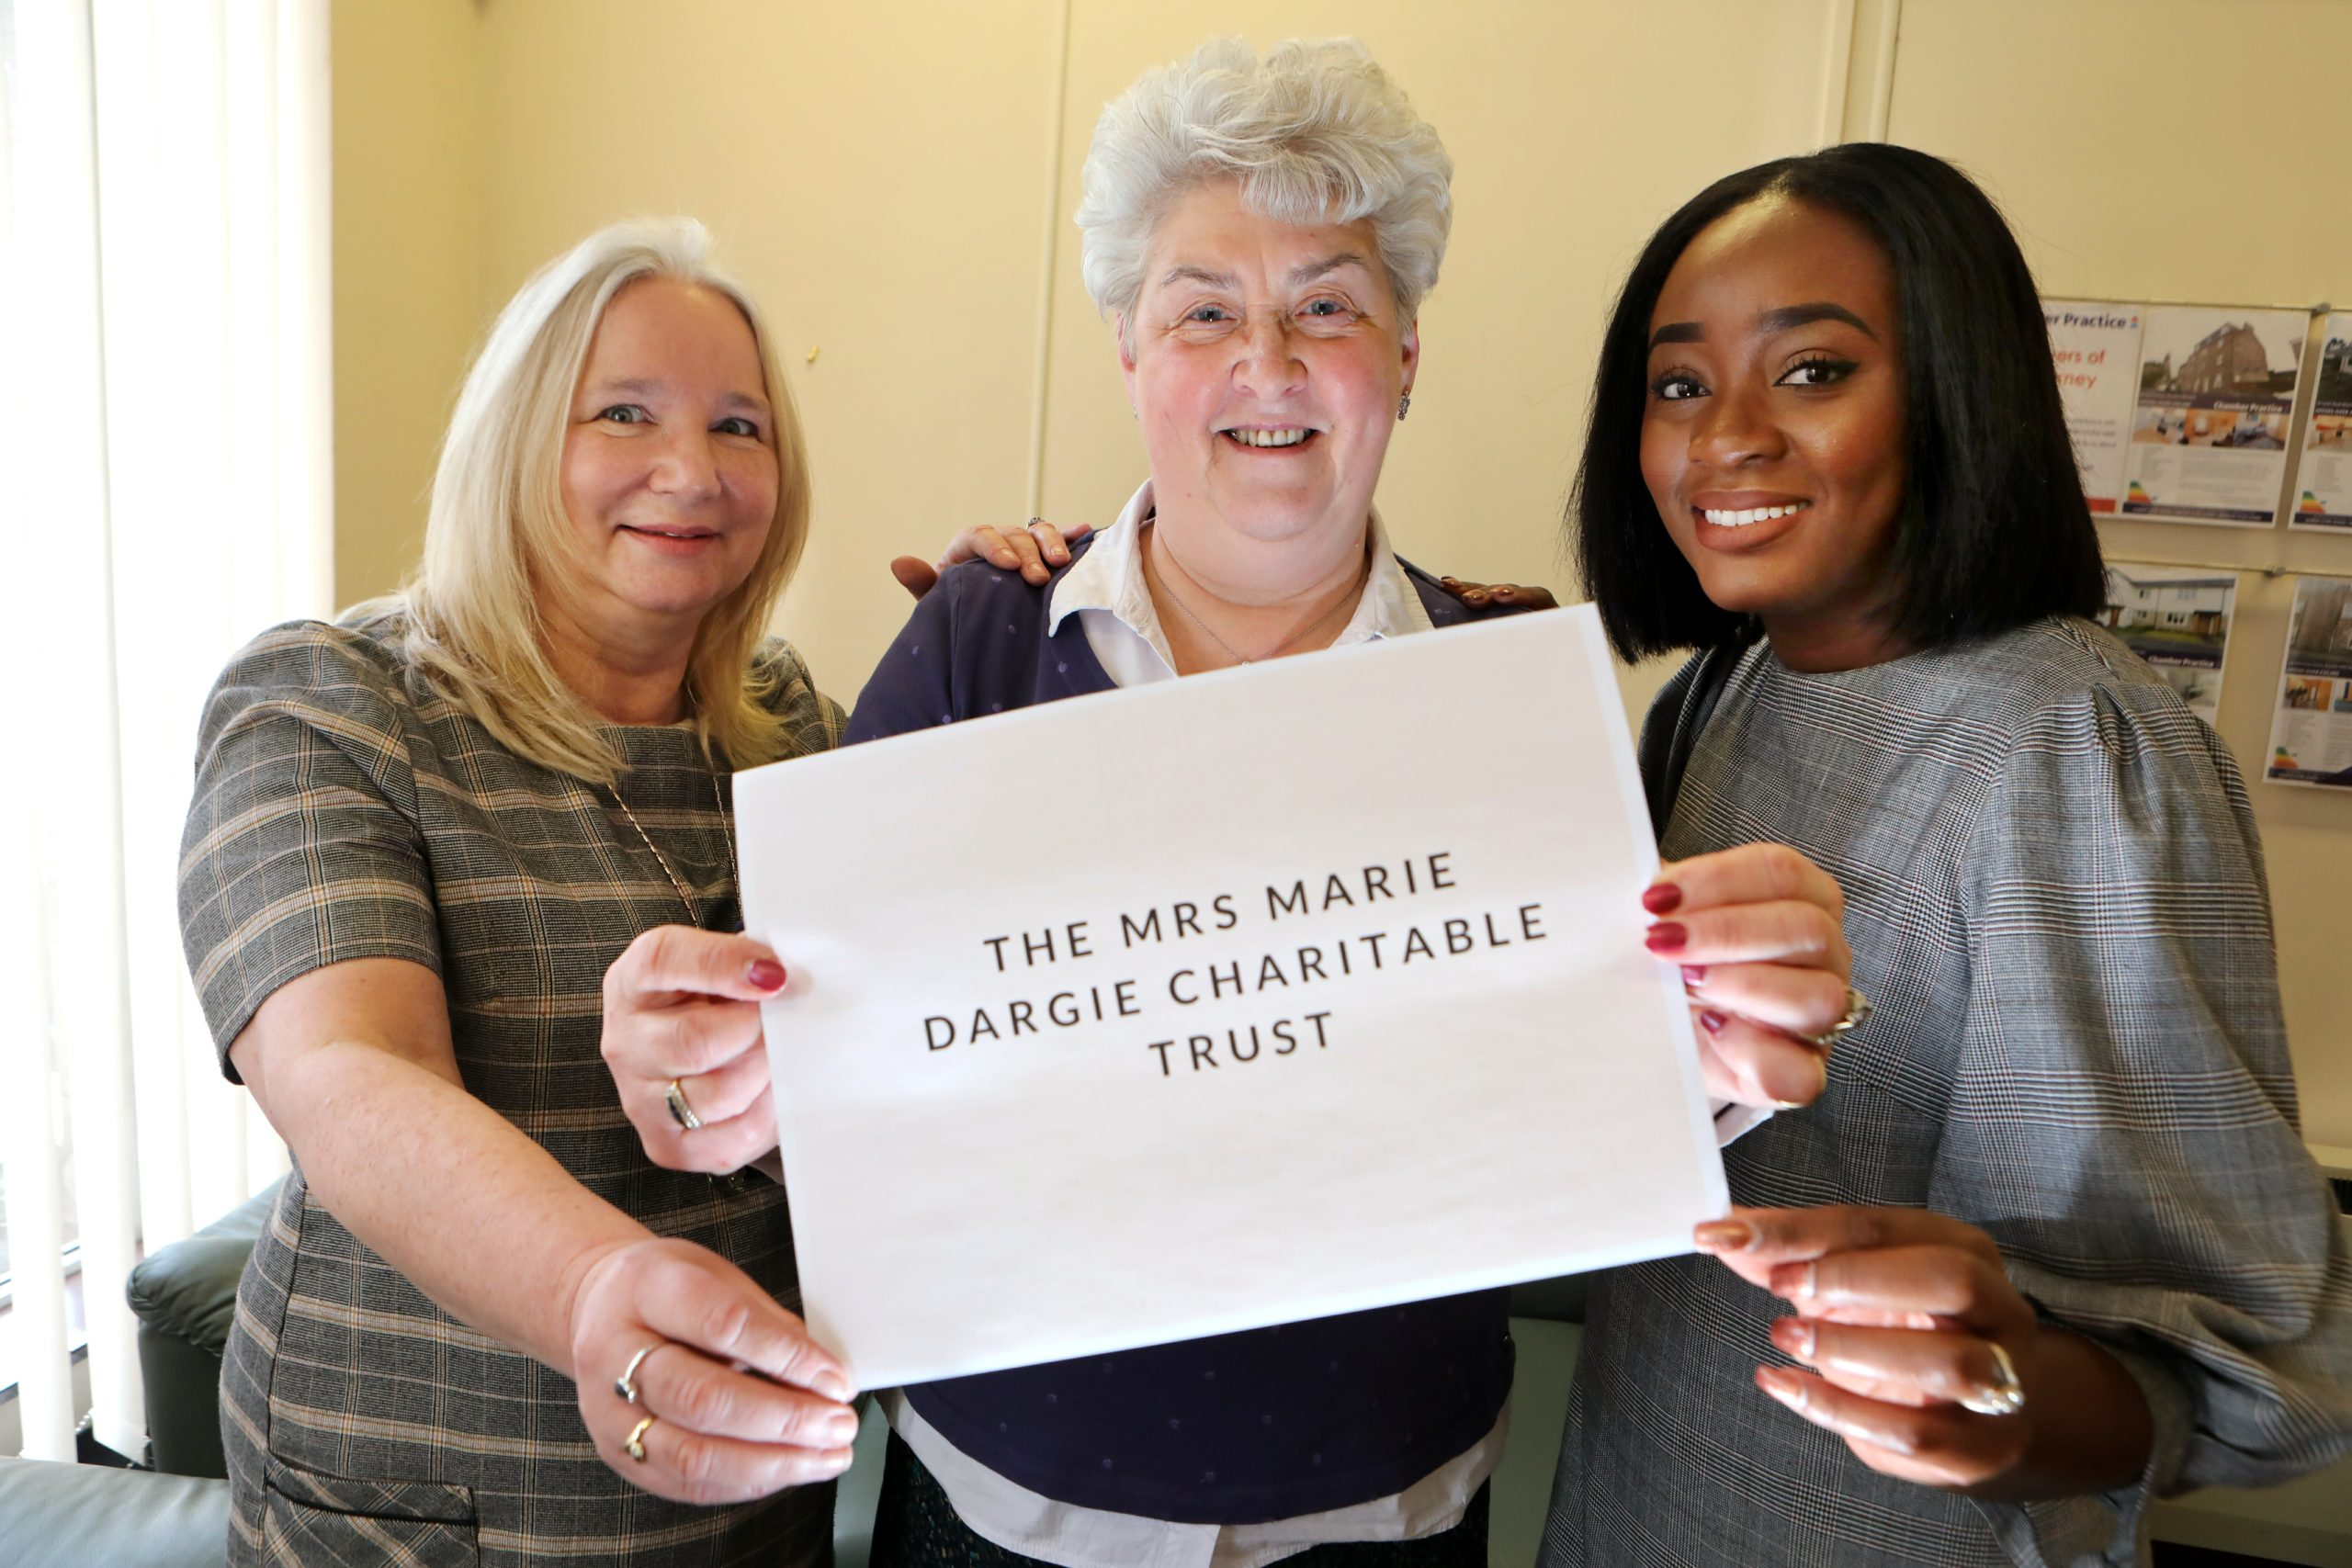 Sandra Teal, Liz Murray and Kudzi Campbell, all from the Chamber Practice, at the launch the Marie Dargie Trust.